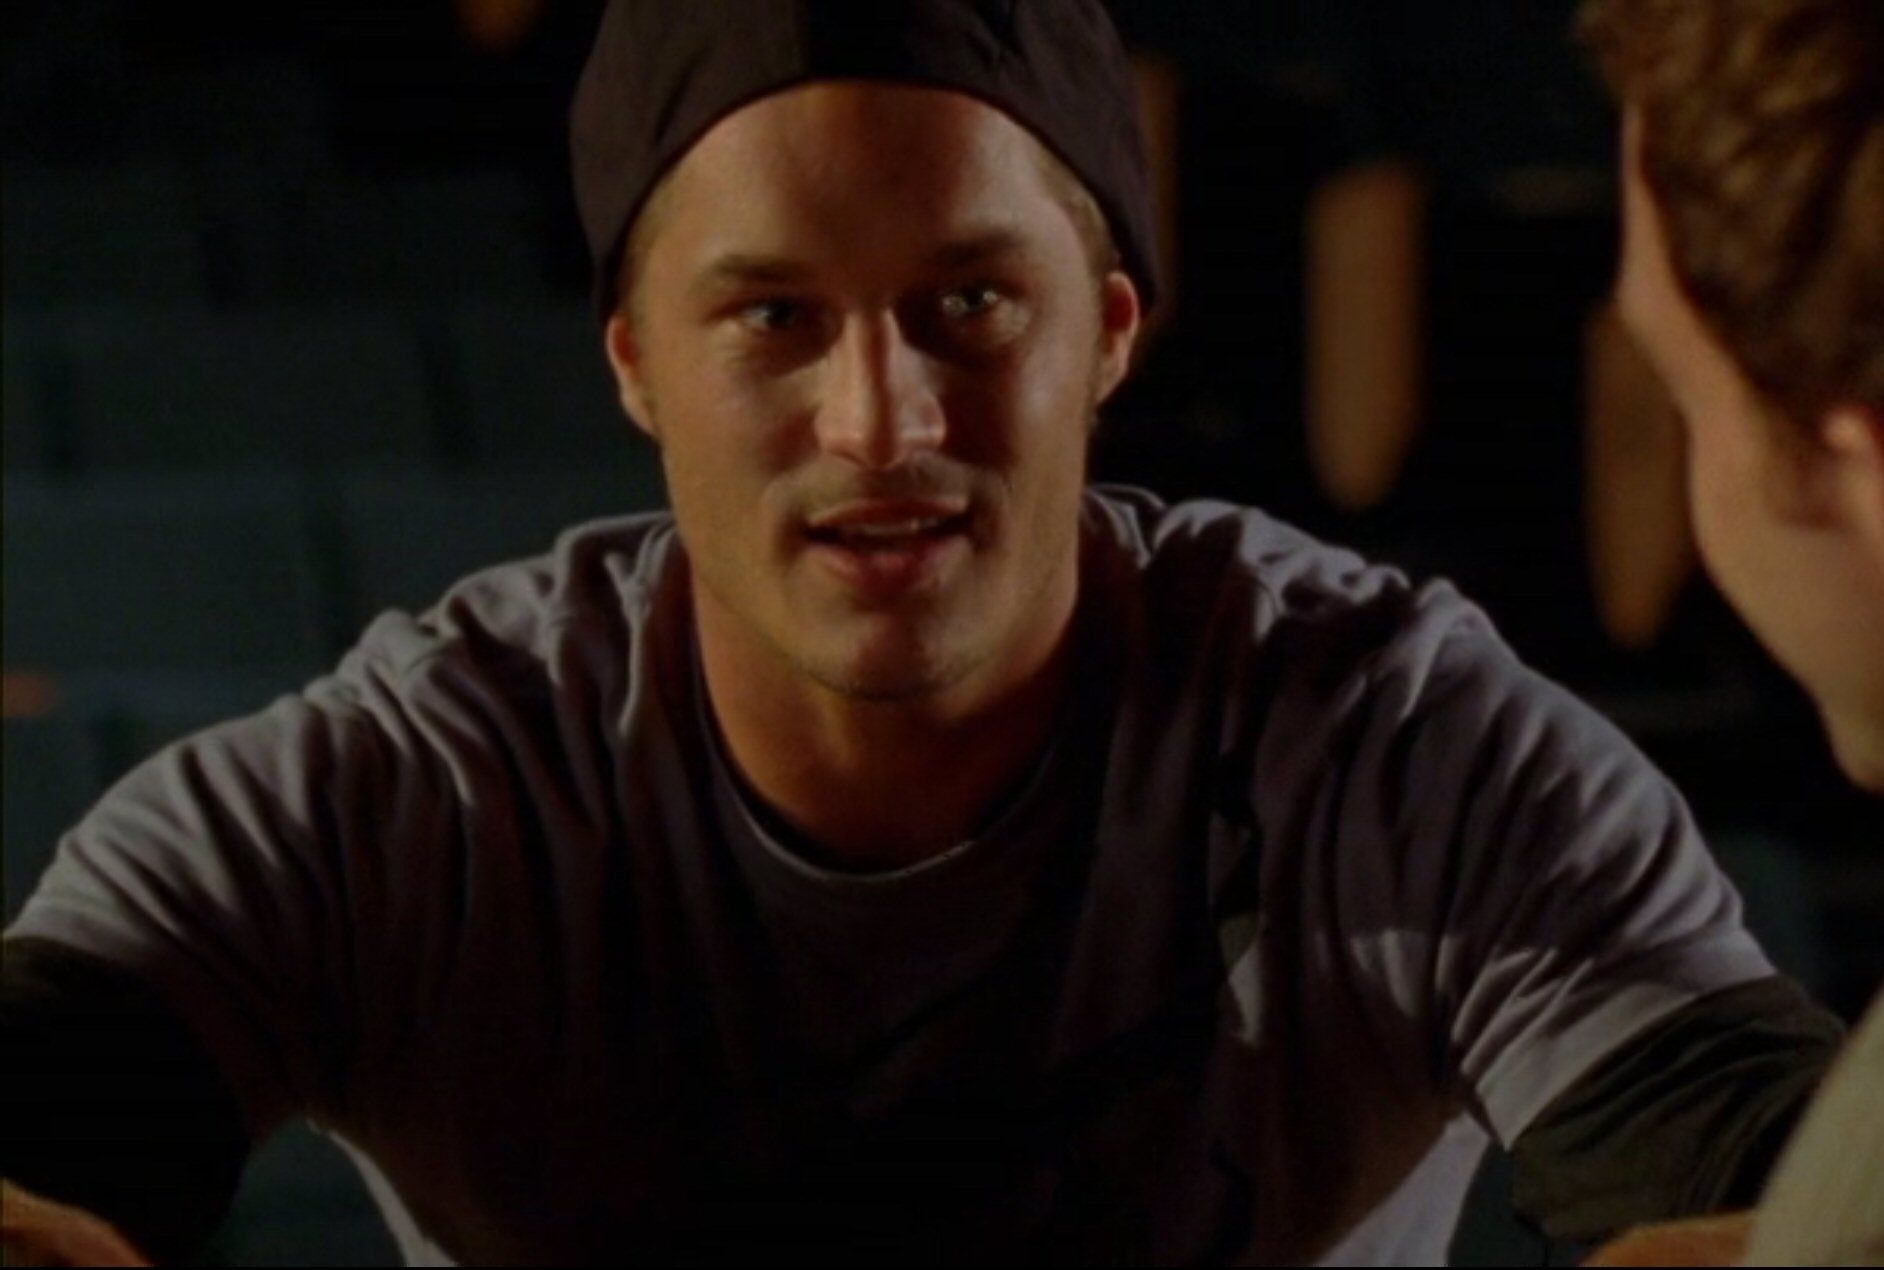 From the movie Ivory (2010 Travis Fimmel as 'Jake